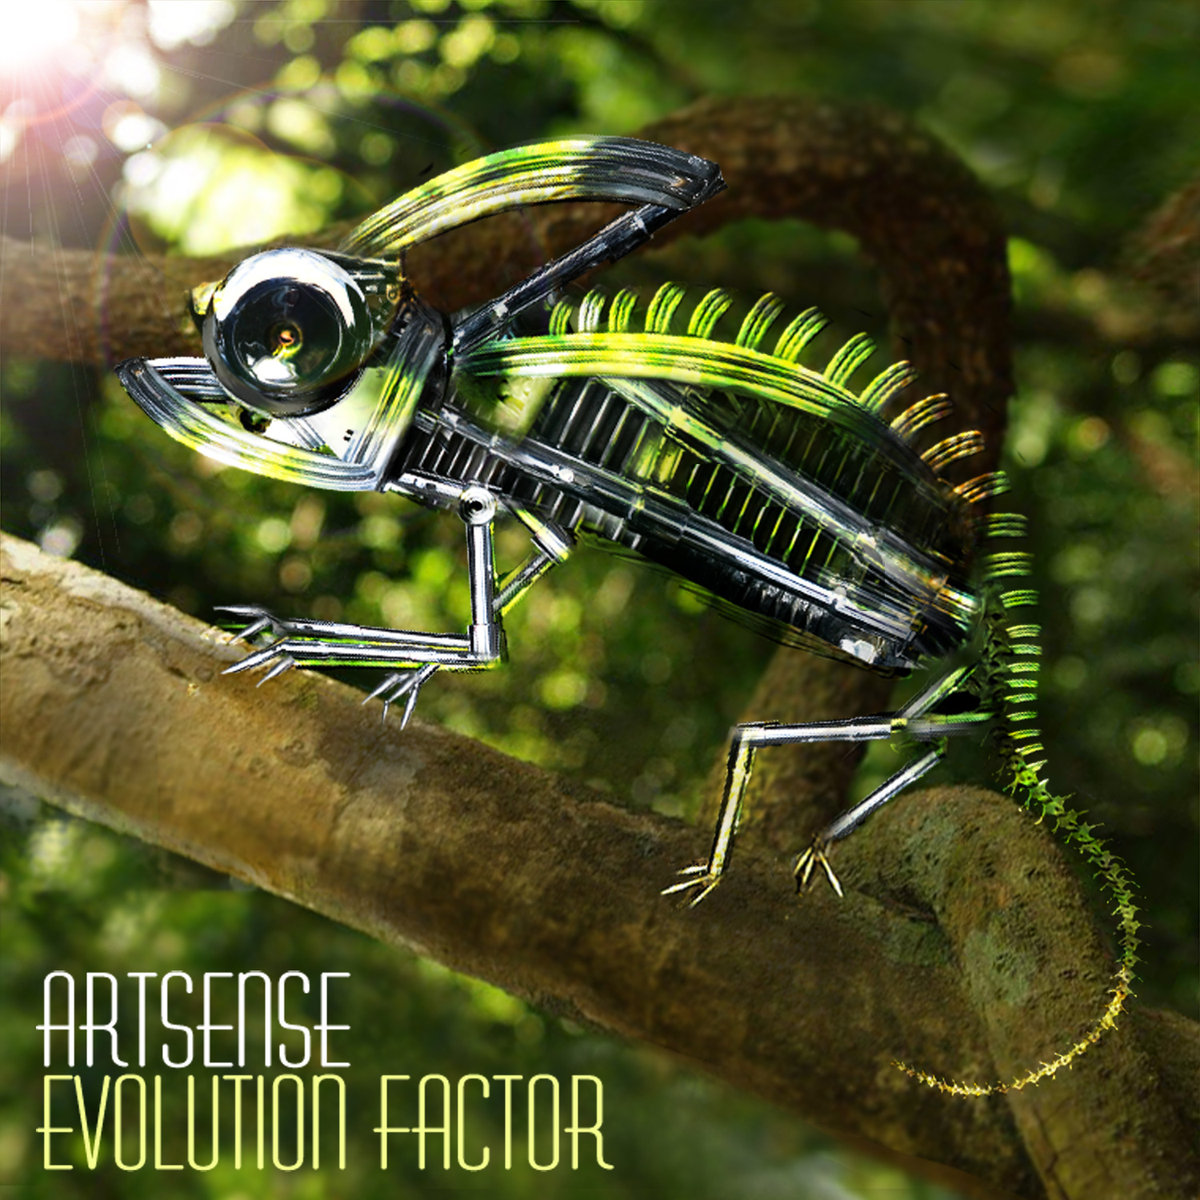 Artsense - Carousel @ 'Evolution Factor' album (electronic, goa)